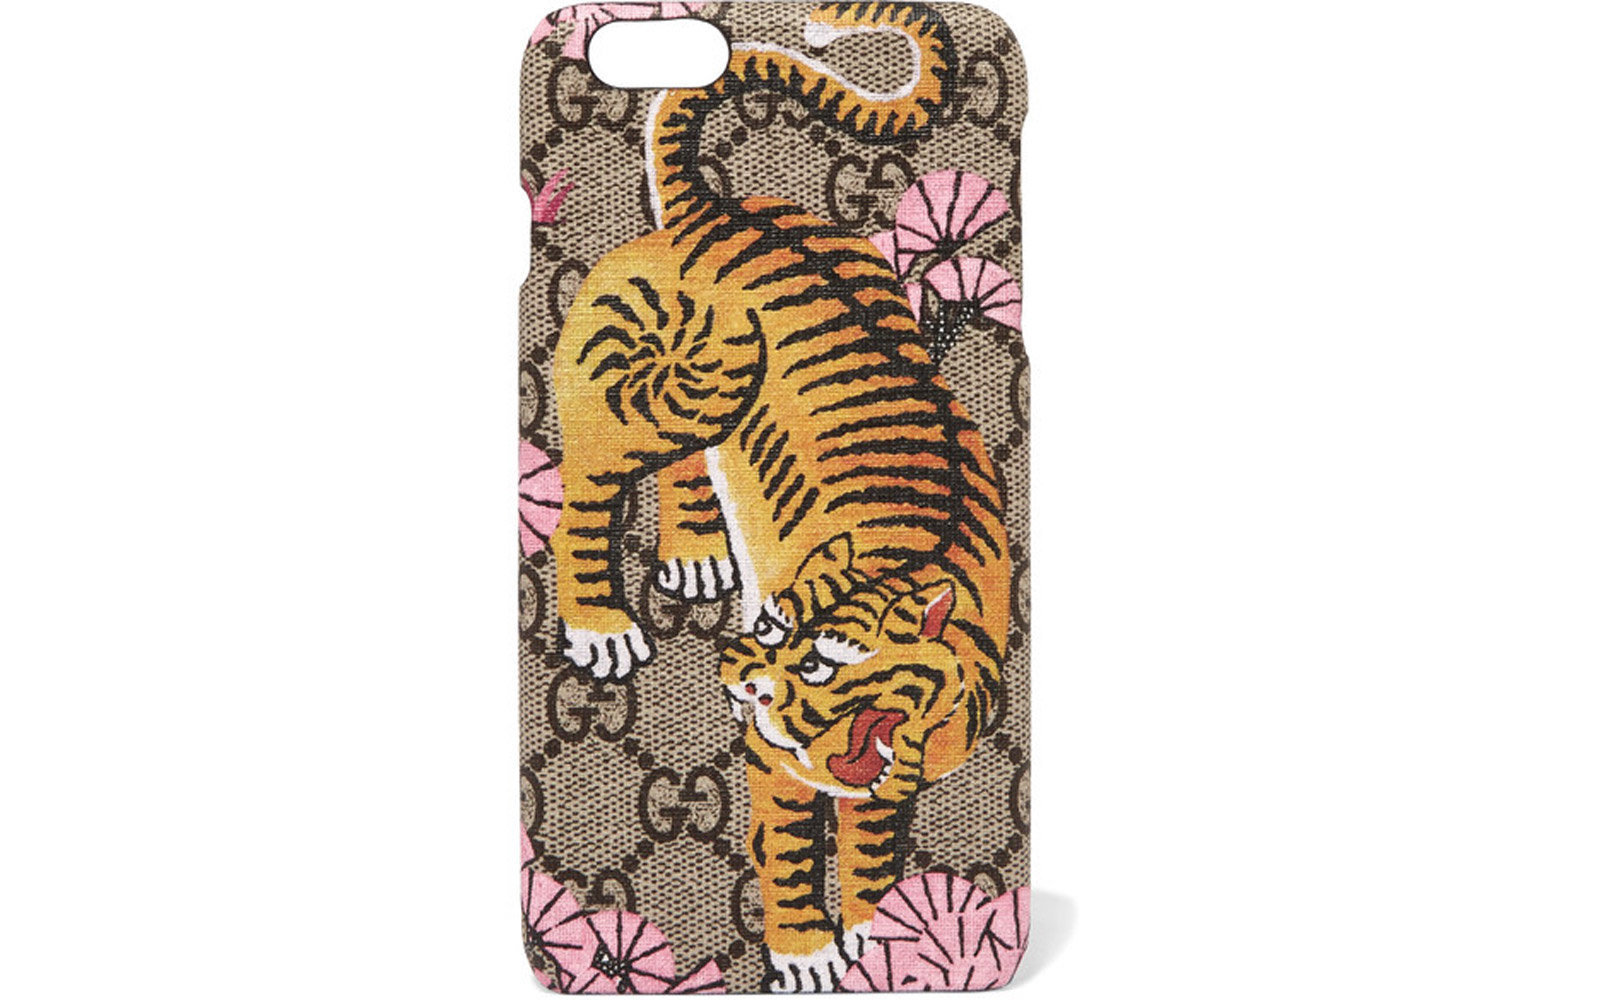 Printed coated canvas iPhone 6 Plus case